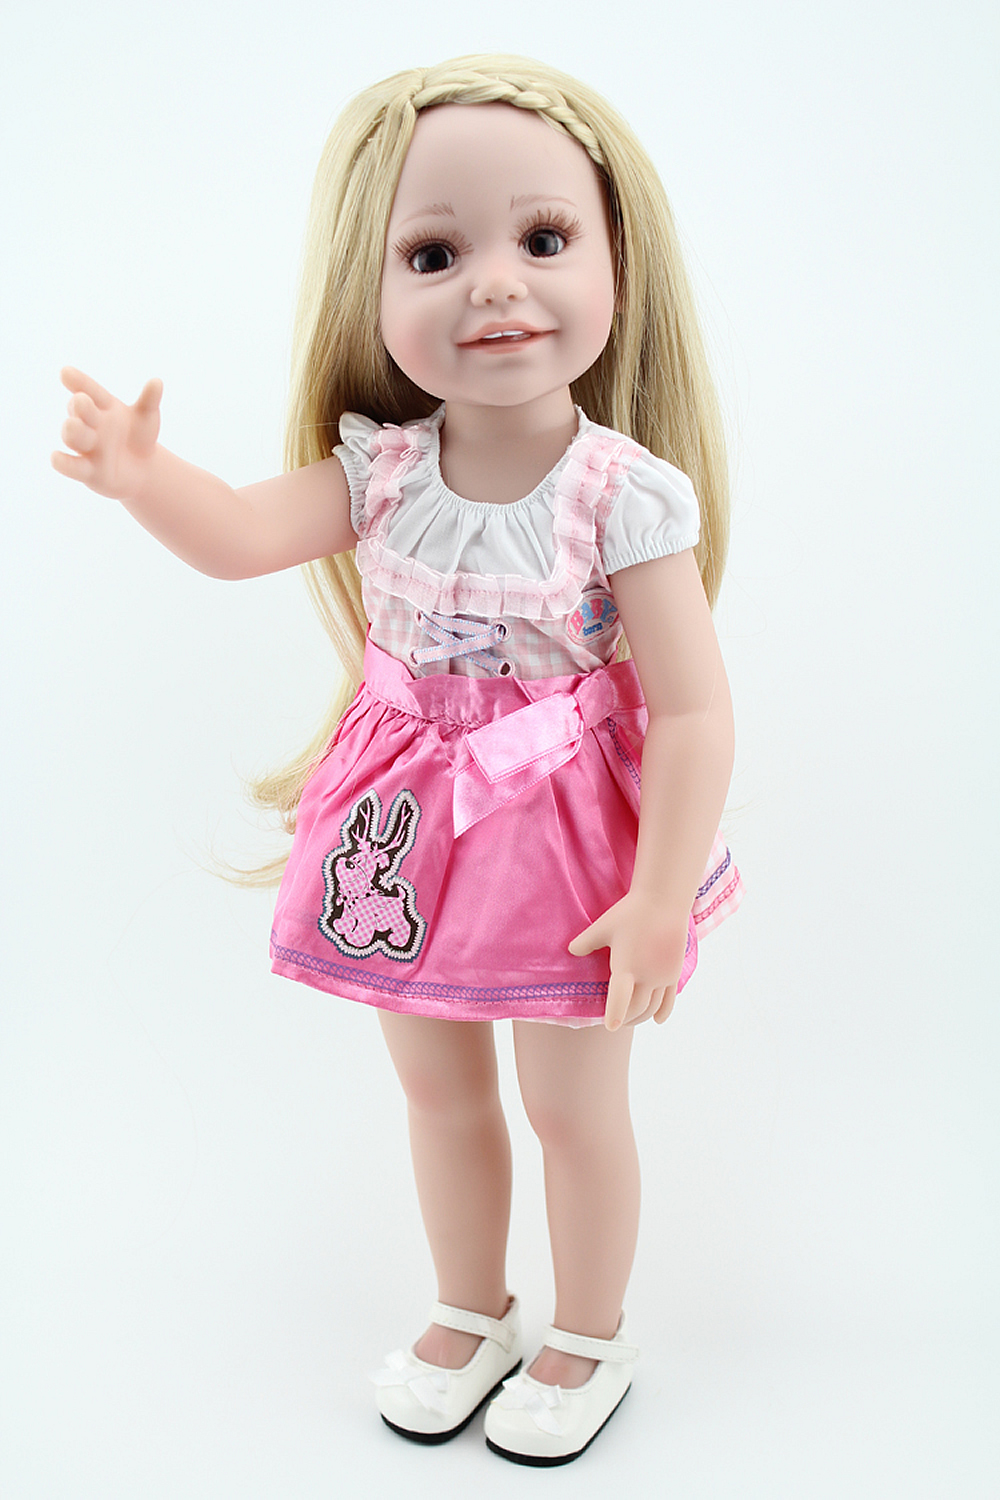 Reborn Baby Doll Kids Playmate Pink Princess Girl Blonde Hair Fashion 18 inch American Babies Collection